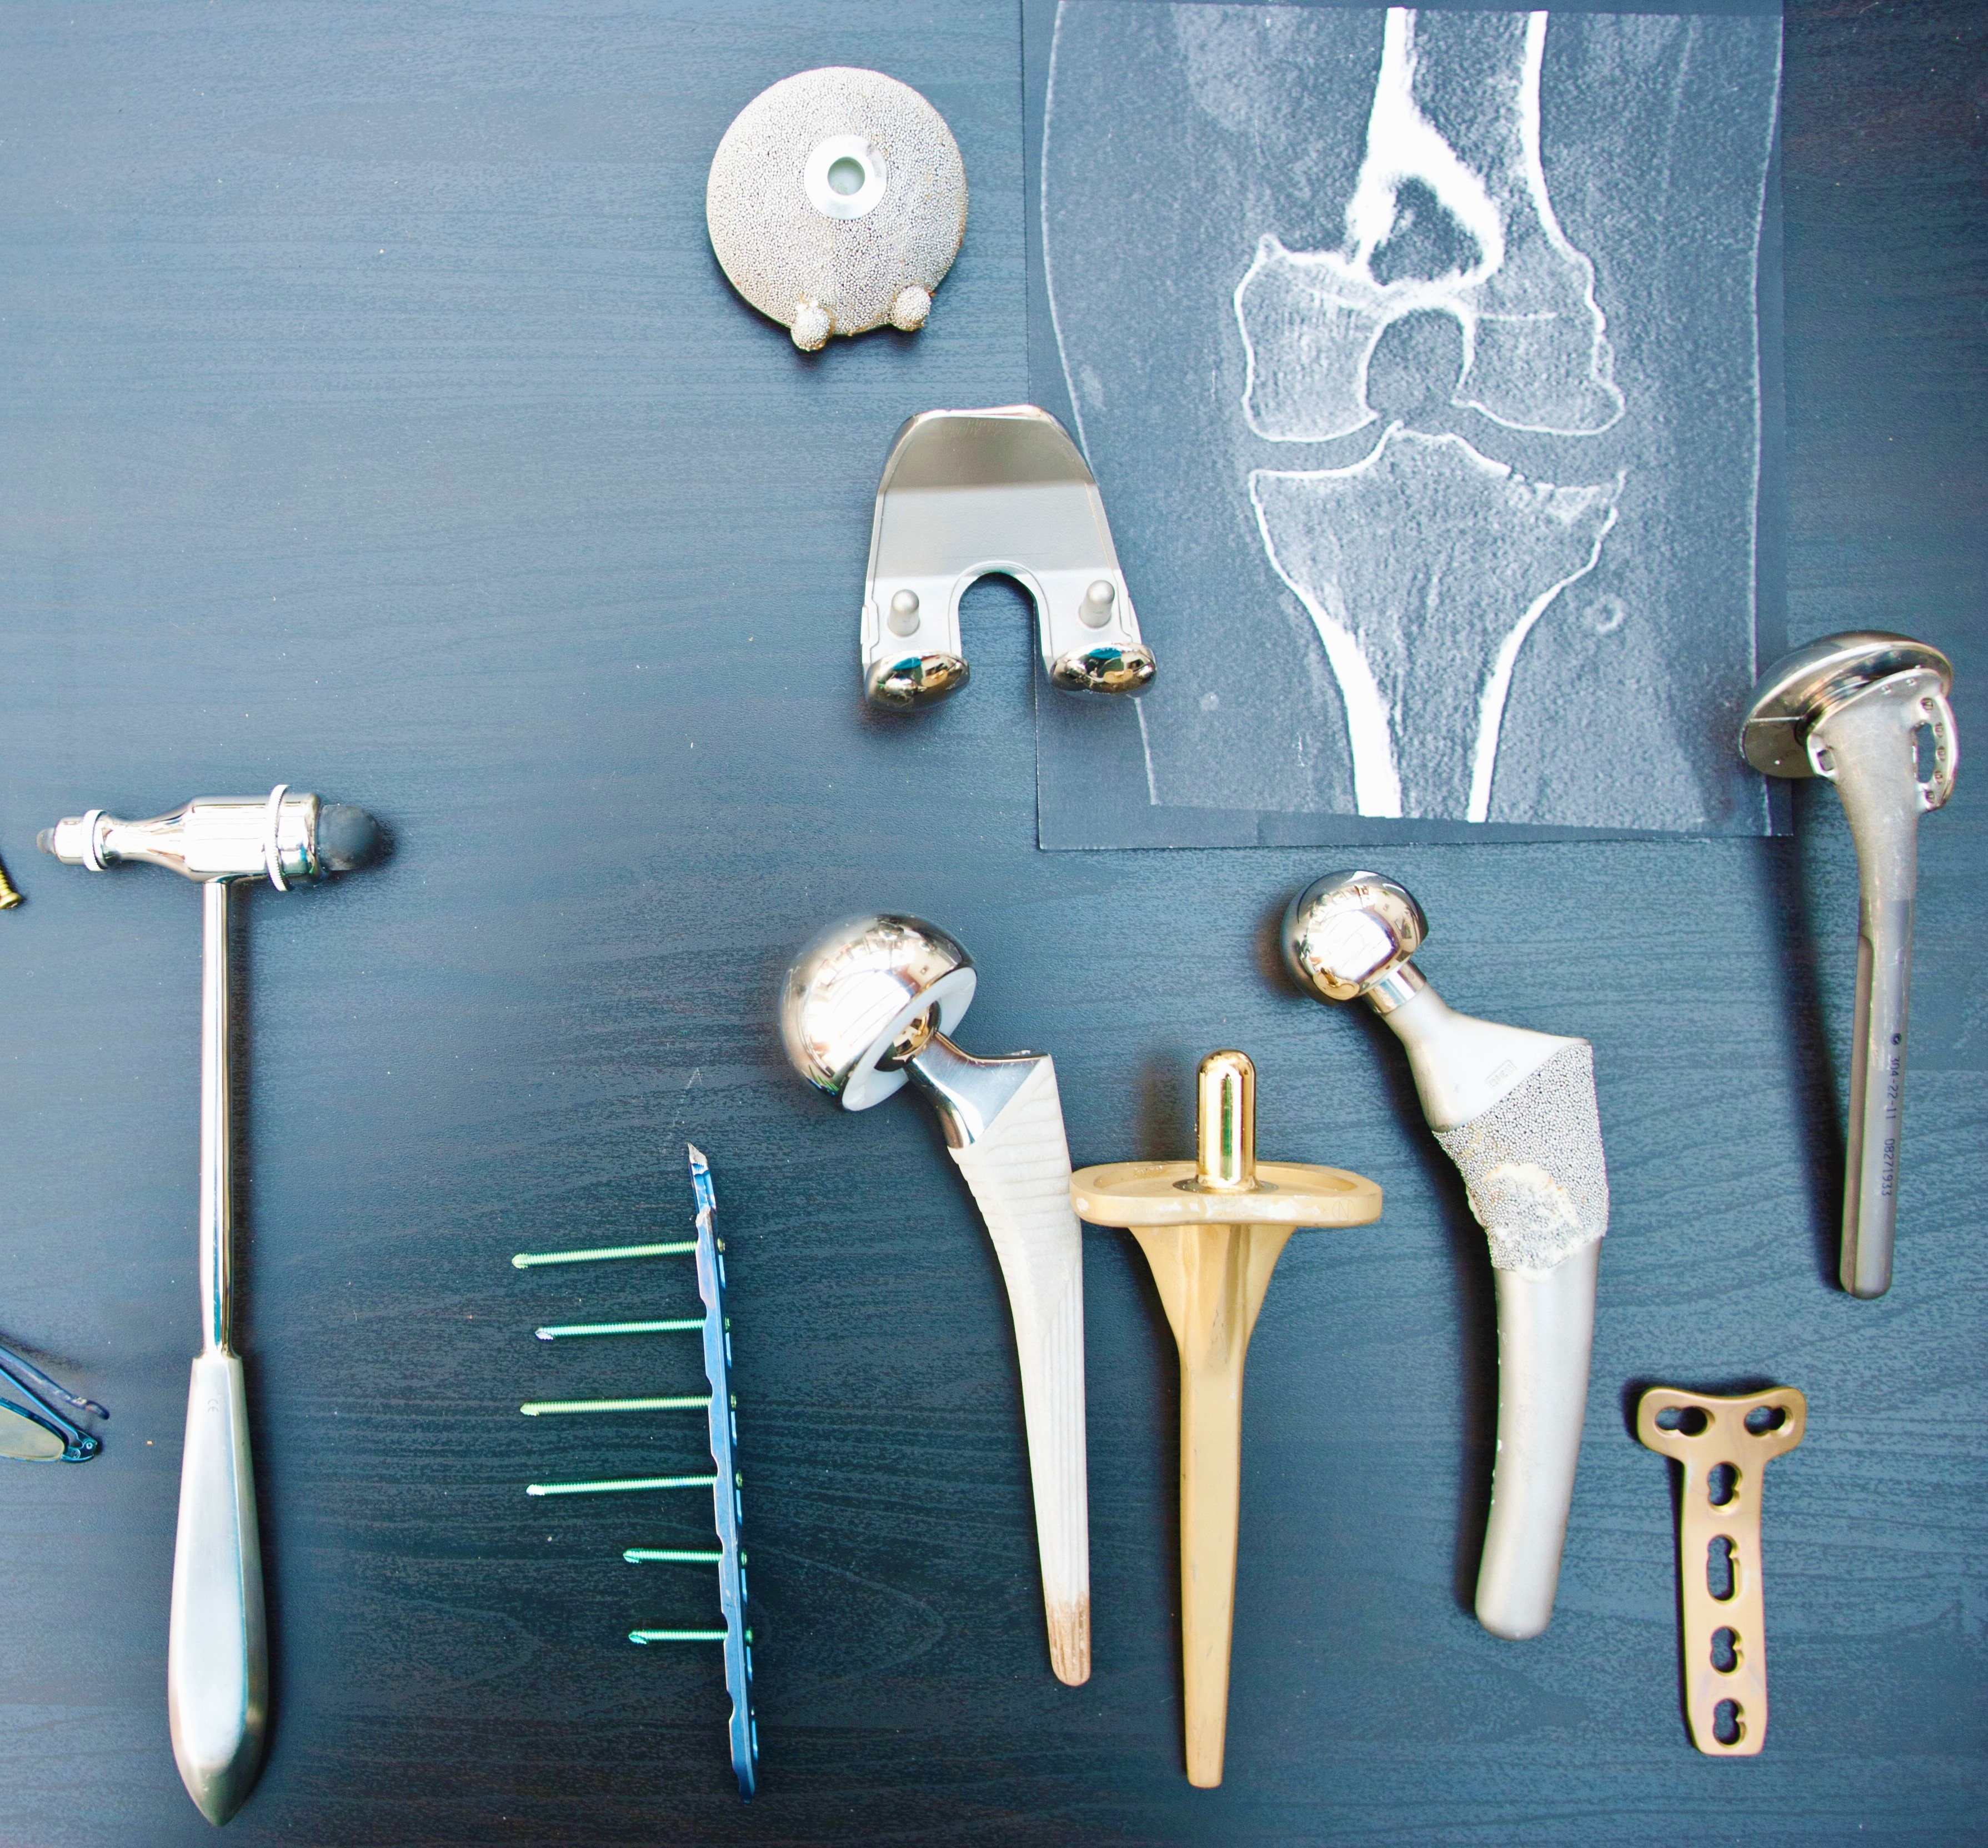 Desk of an orthopedic surgeon with different types of arthroplasties.